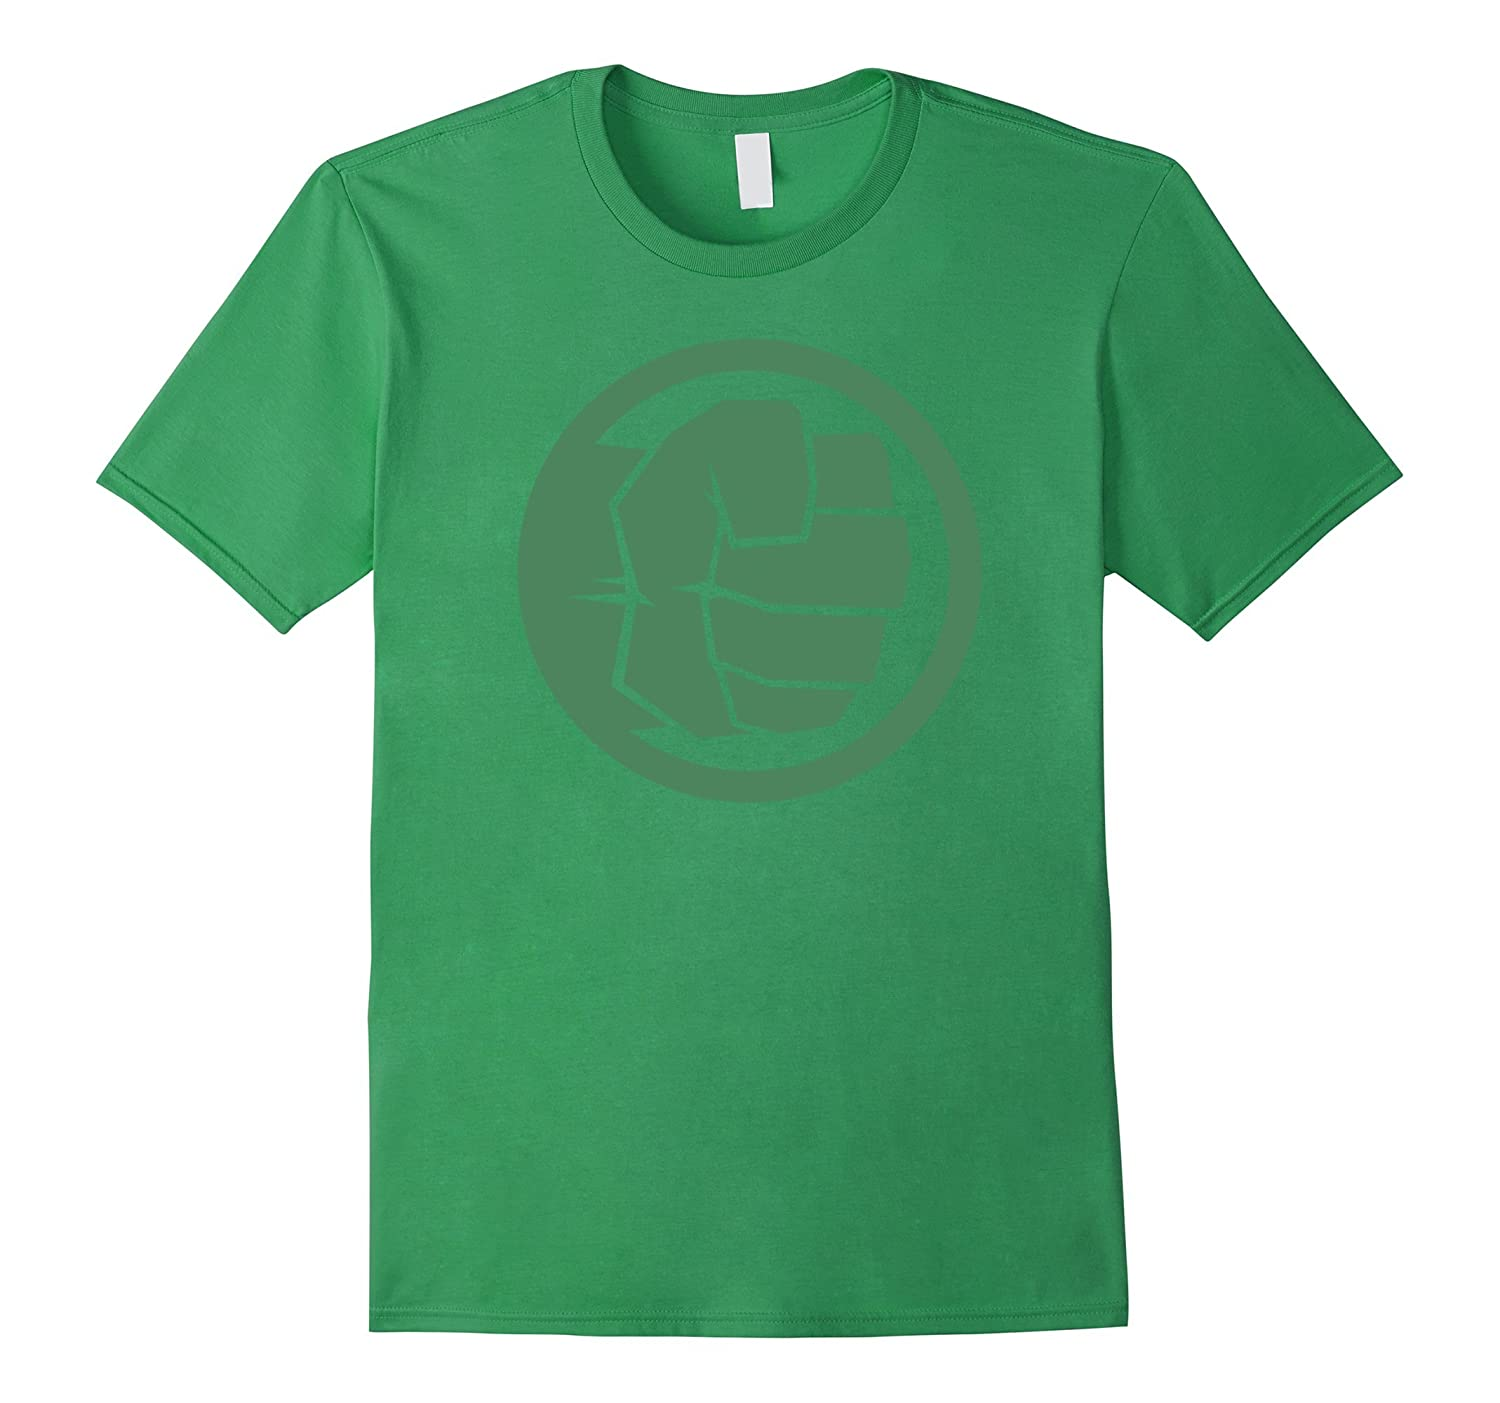 Hulk Fist Graphic T Shirt Pl Polozatee